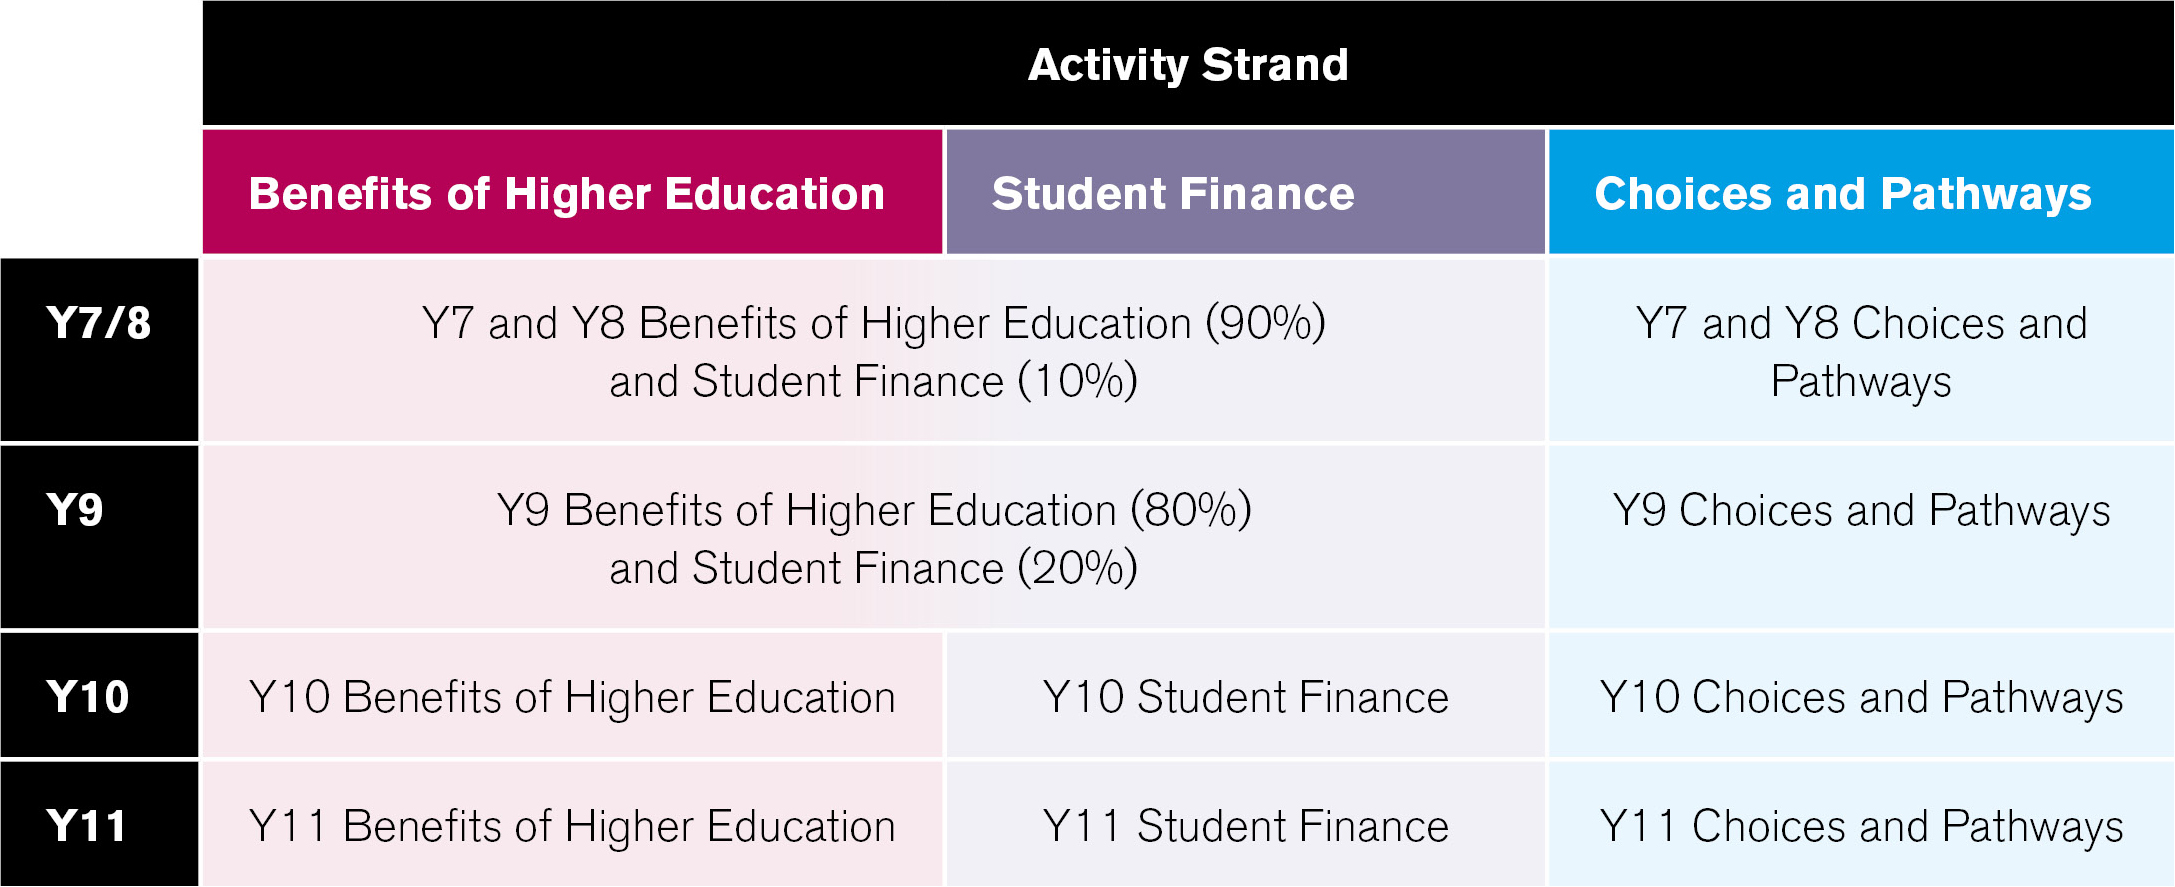 Table of Activity Strands for Hepp Delivery. Y7 & Y8 Benefits of Higher Education (90%) and Student Finance (10%), Y7 and Y8 Choices and Pathways. Y9 Benefits of Higher Education (80%) and Student Finance (20%), Y9 Choices and Pathways. Y10 Benefits of Higher Education, Y10 Student Finance and Y10 Choices and Pathways. Y11 Benefits of Higher Education, Y11 Student Finance and Y11 Choices and Pathways.